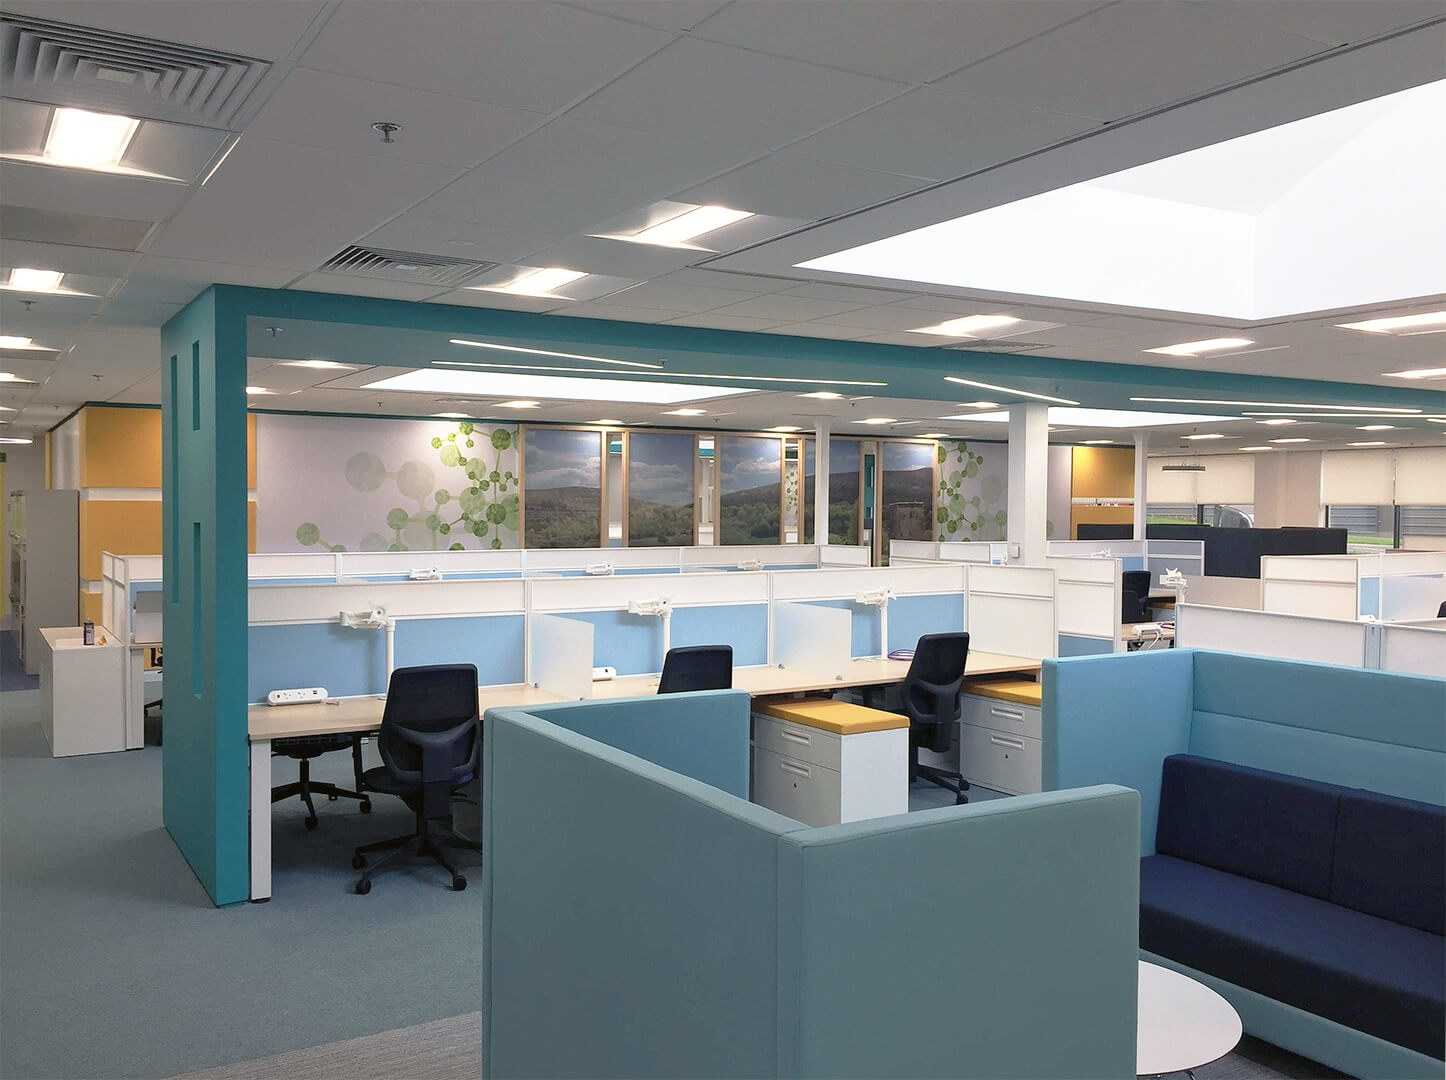 Merck Sharp & Dohme (MSD) Ballydine, Clonmel, Co. Tipperary, Ireland - Expansion Fit-Out